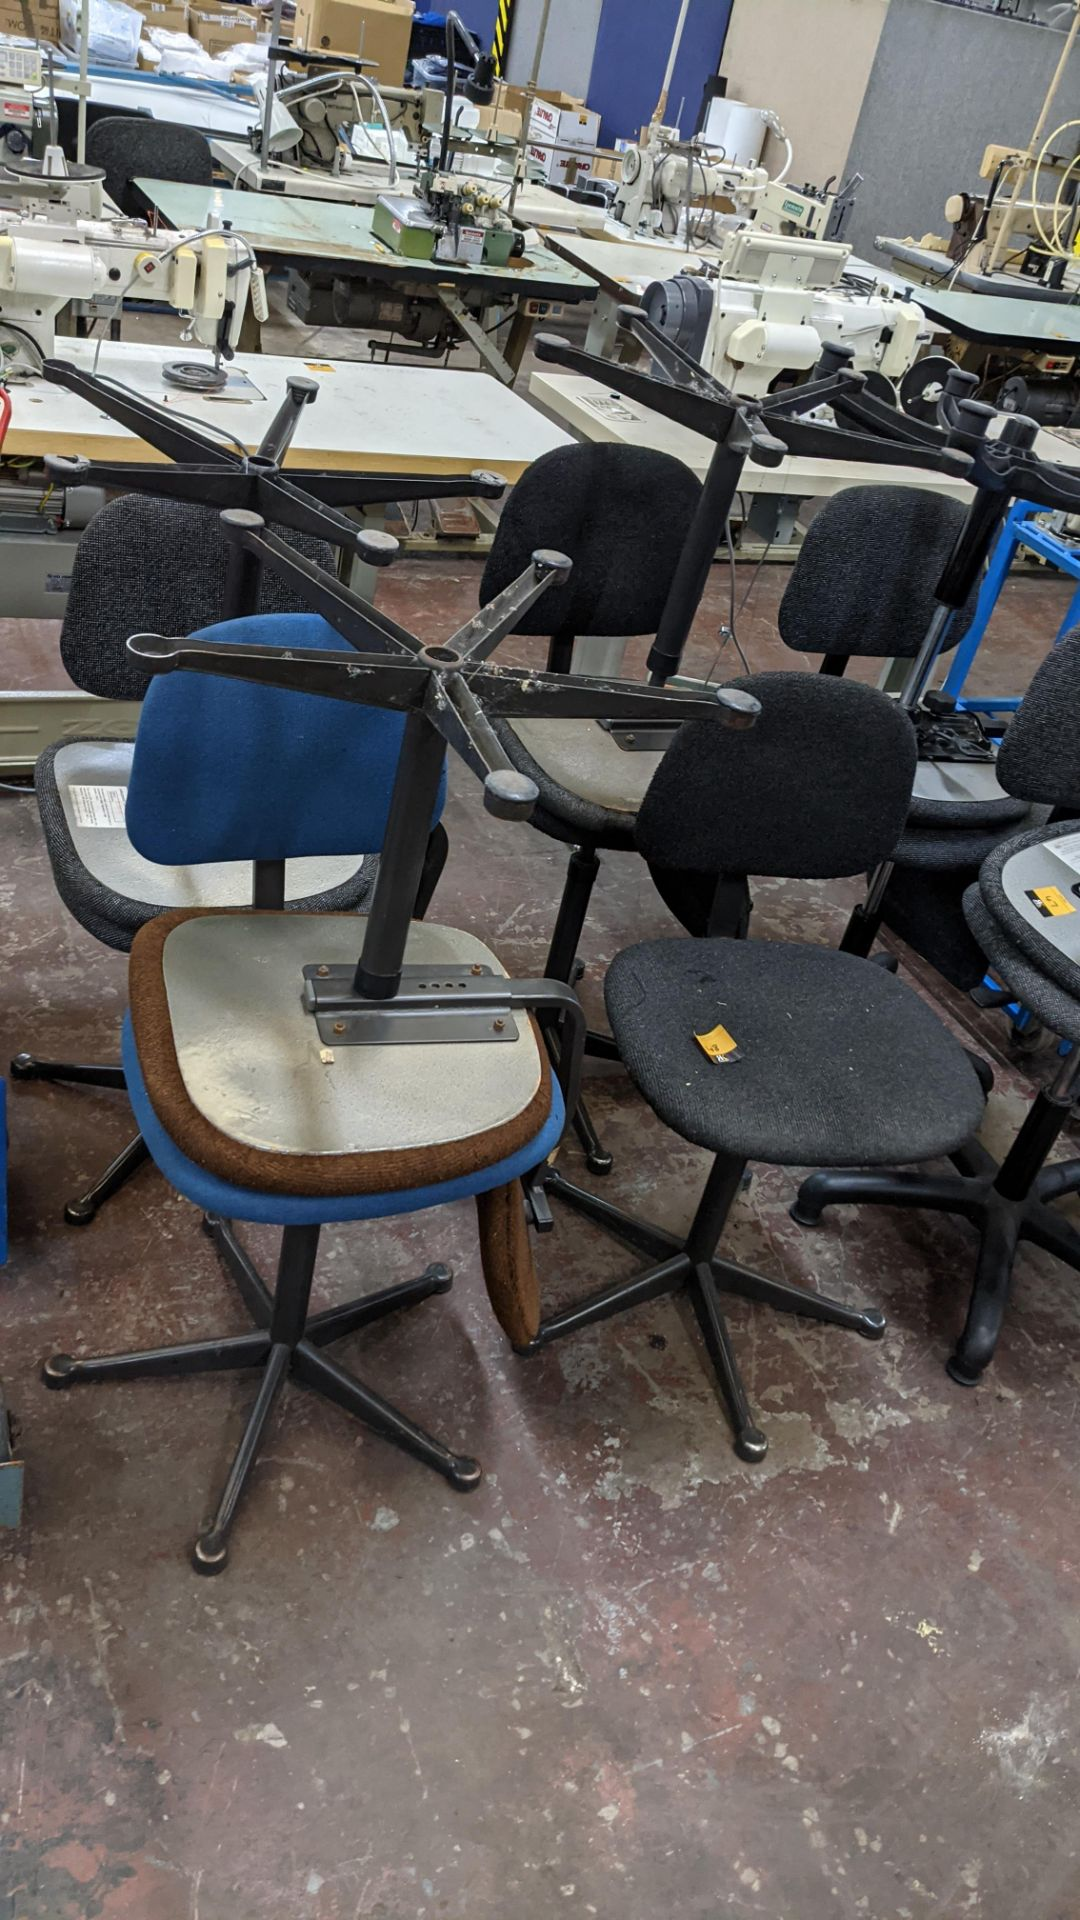 7 off assorted machinists chairs - Image 2 of 9